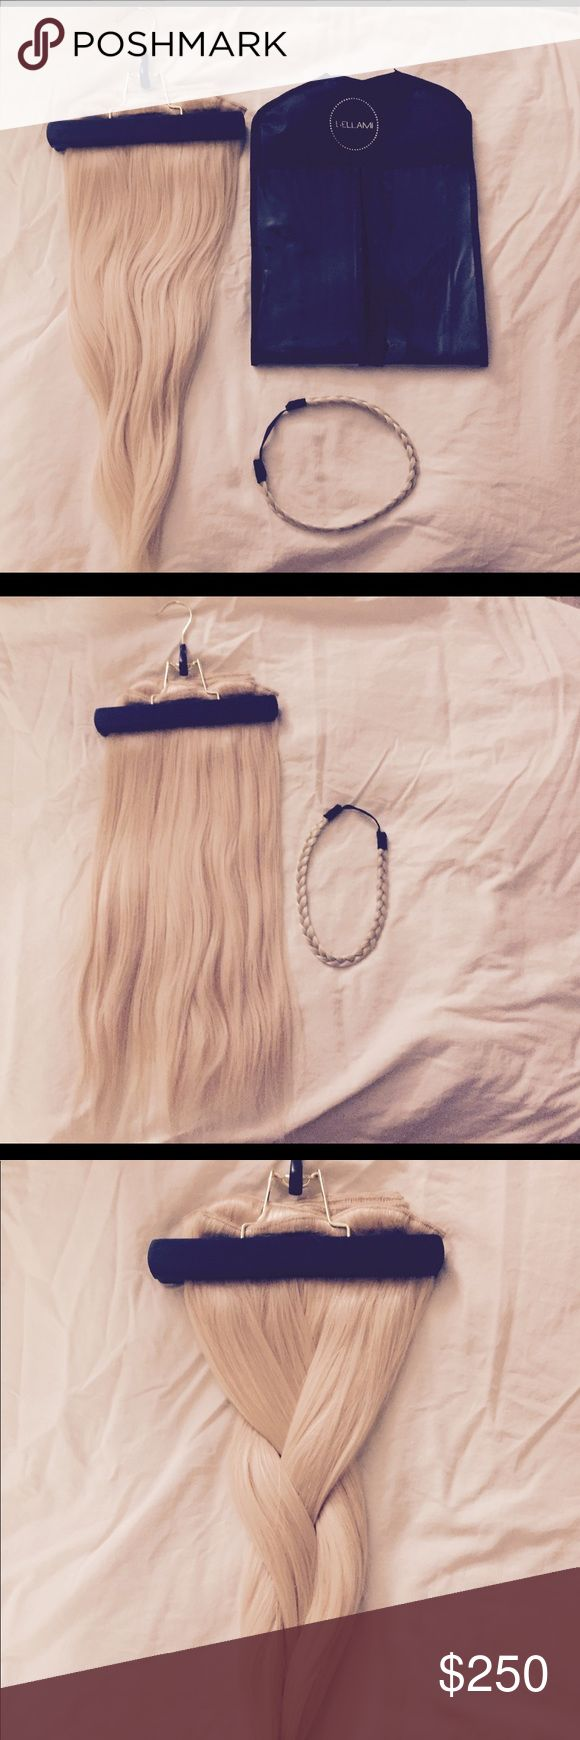 "Bellami Khalessi Hair Extensions 280G 20"" hair extensions, only worn once for my wedding day! I had them blended, and they've never been dyed. 😊 Includes hanger for extensions, braided head band, and a bellami carrier! 7 pieces included. Bellami Other"